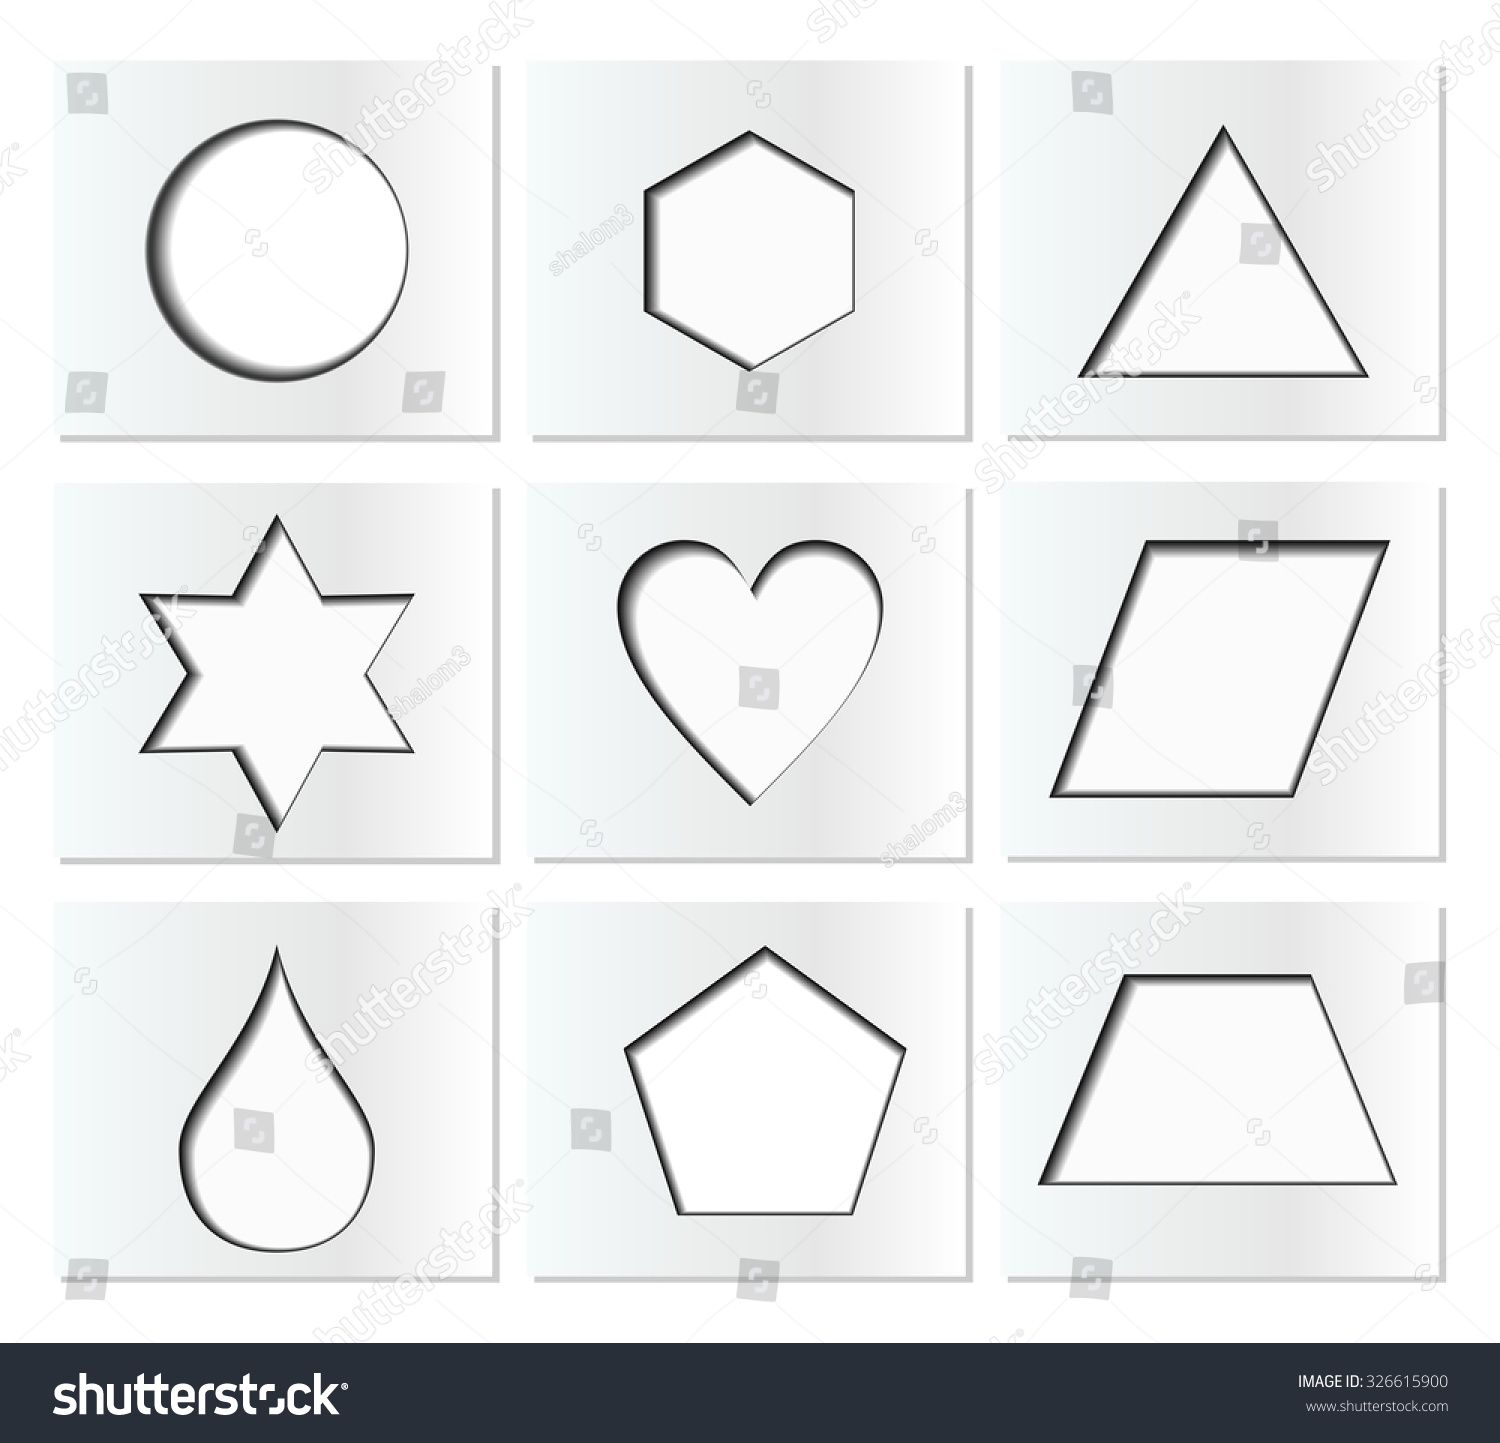 Template Simple Geometric Shapes Inner Shadow Stock Vector